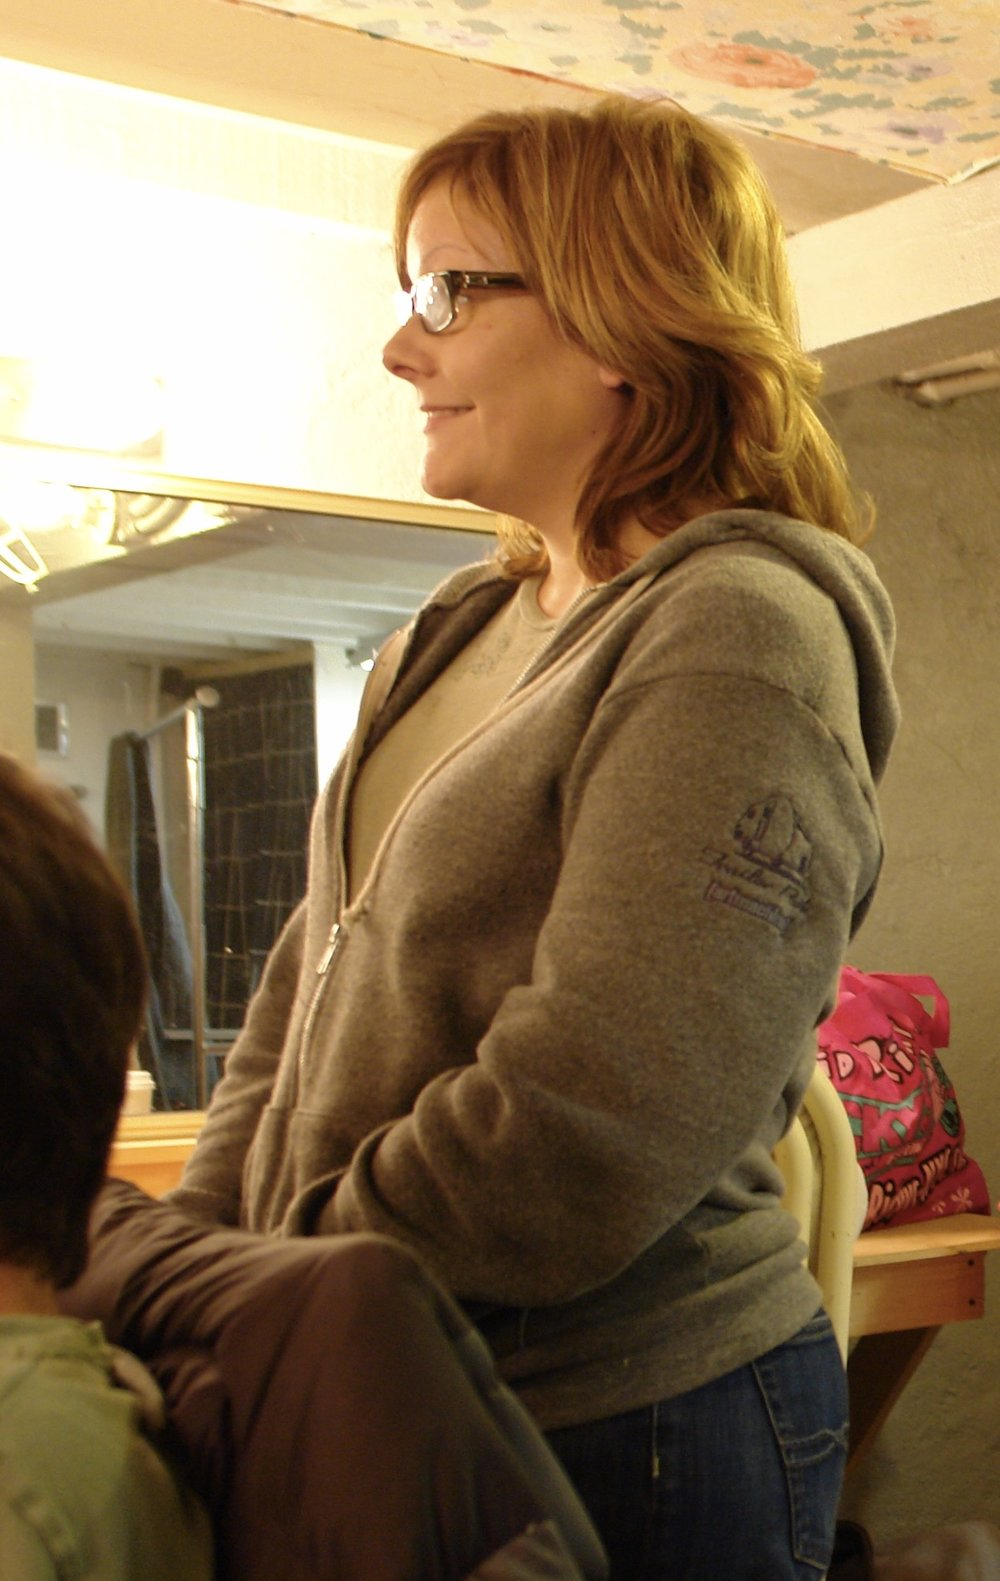 Producer Natalie Drouillard backstage at Hollywood's El Centro Theatre during Lascaux Entertainment's 2011 production of  The Elephant Man , directed by John Drouillard.  Photo by John Drouillard.